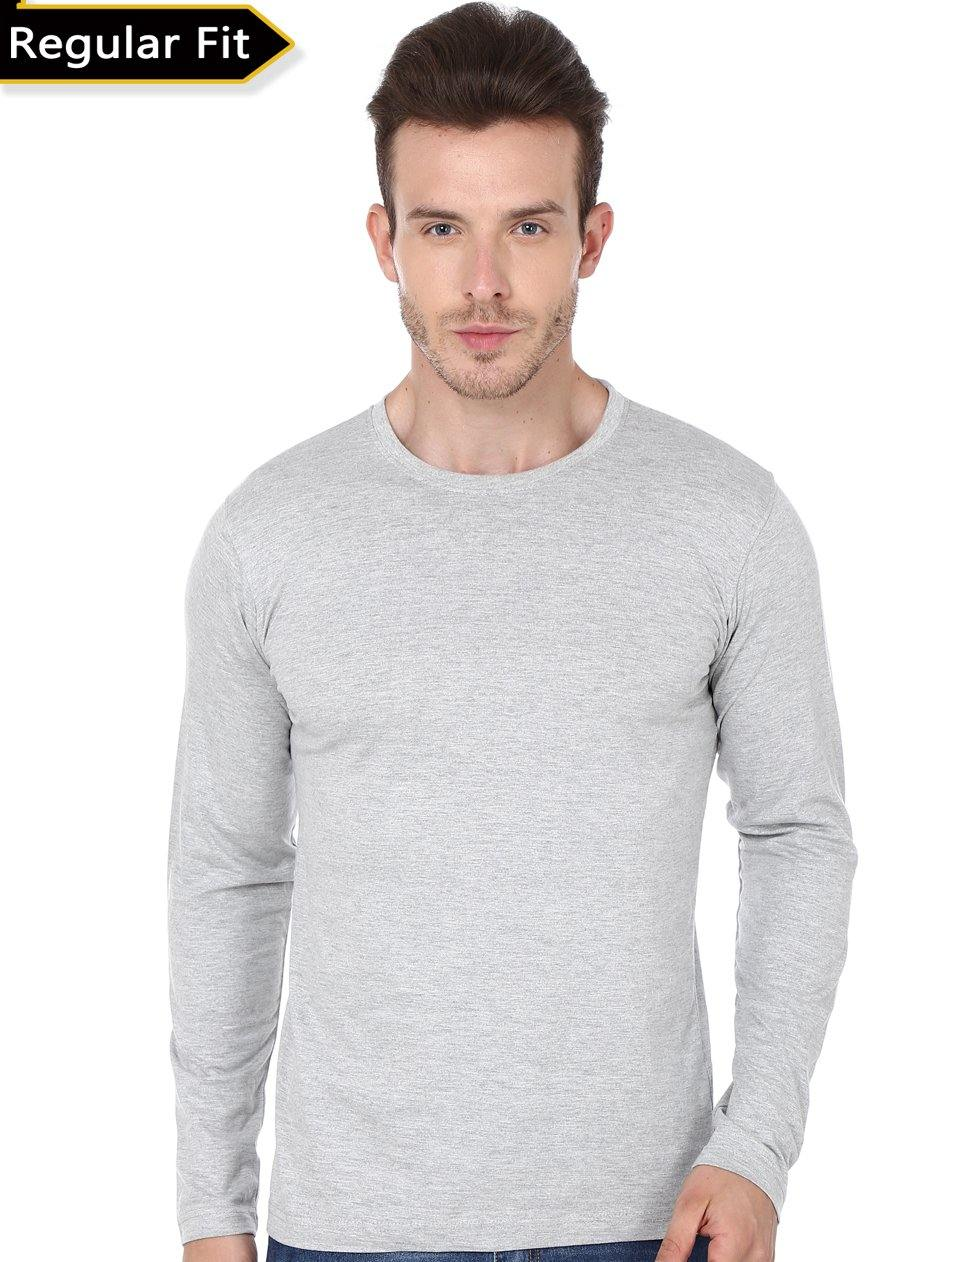 Premium Quality Plain Grey Color Full Sleeve T-Shirt For Men - thewardrobe-store-in